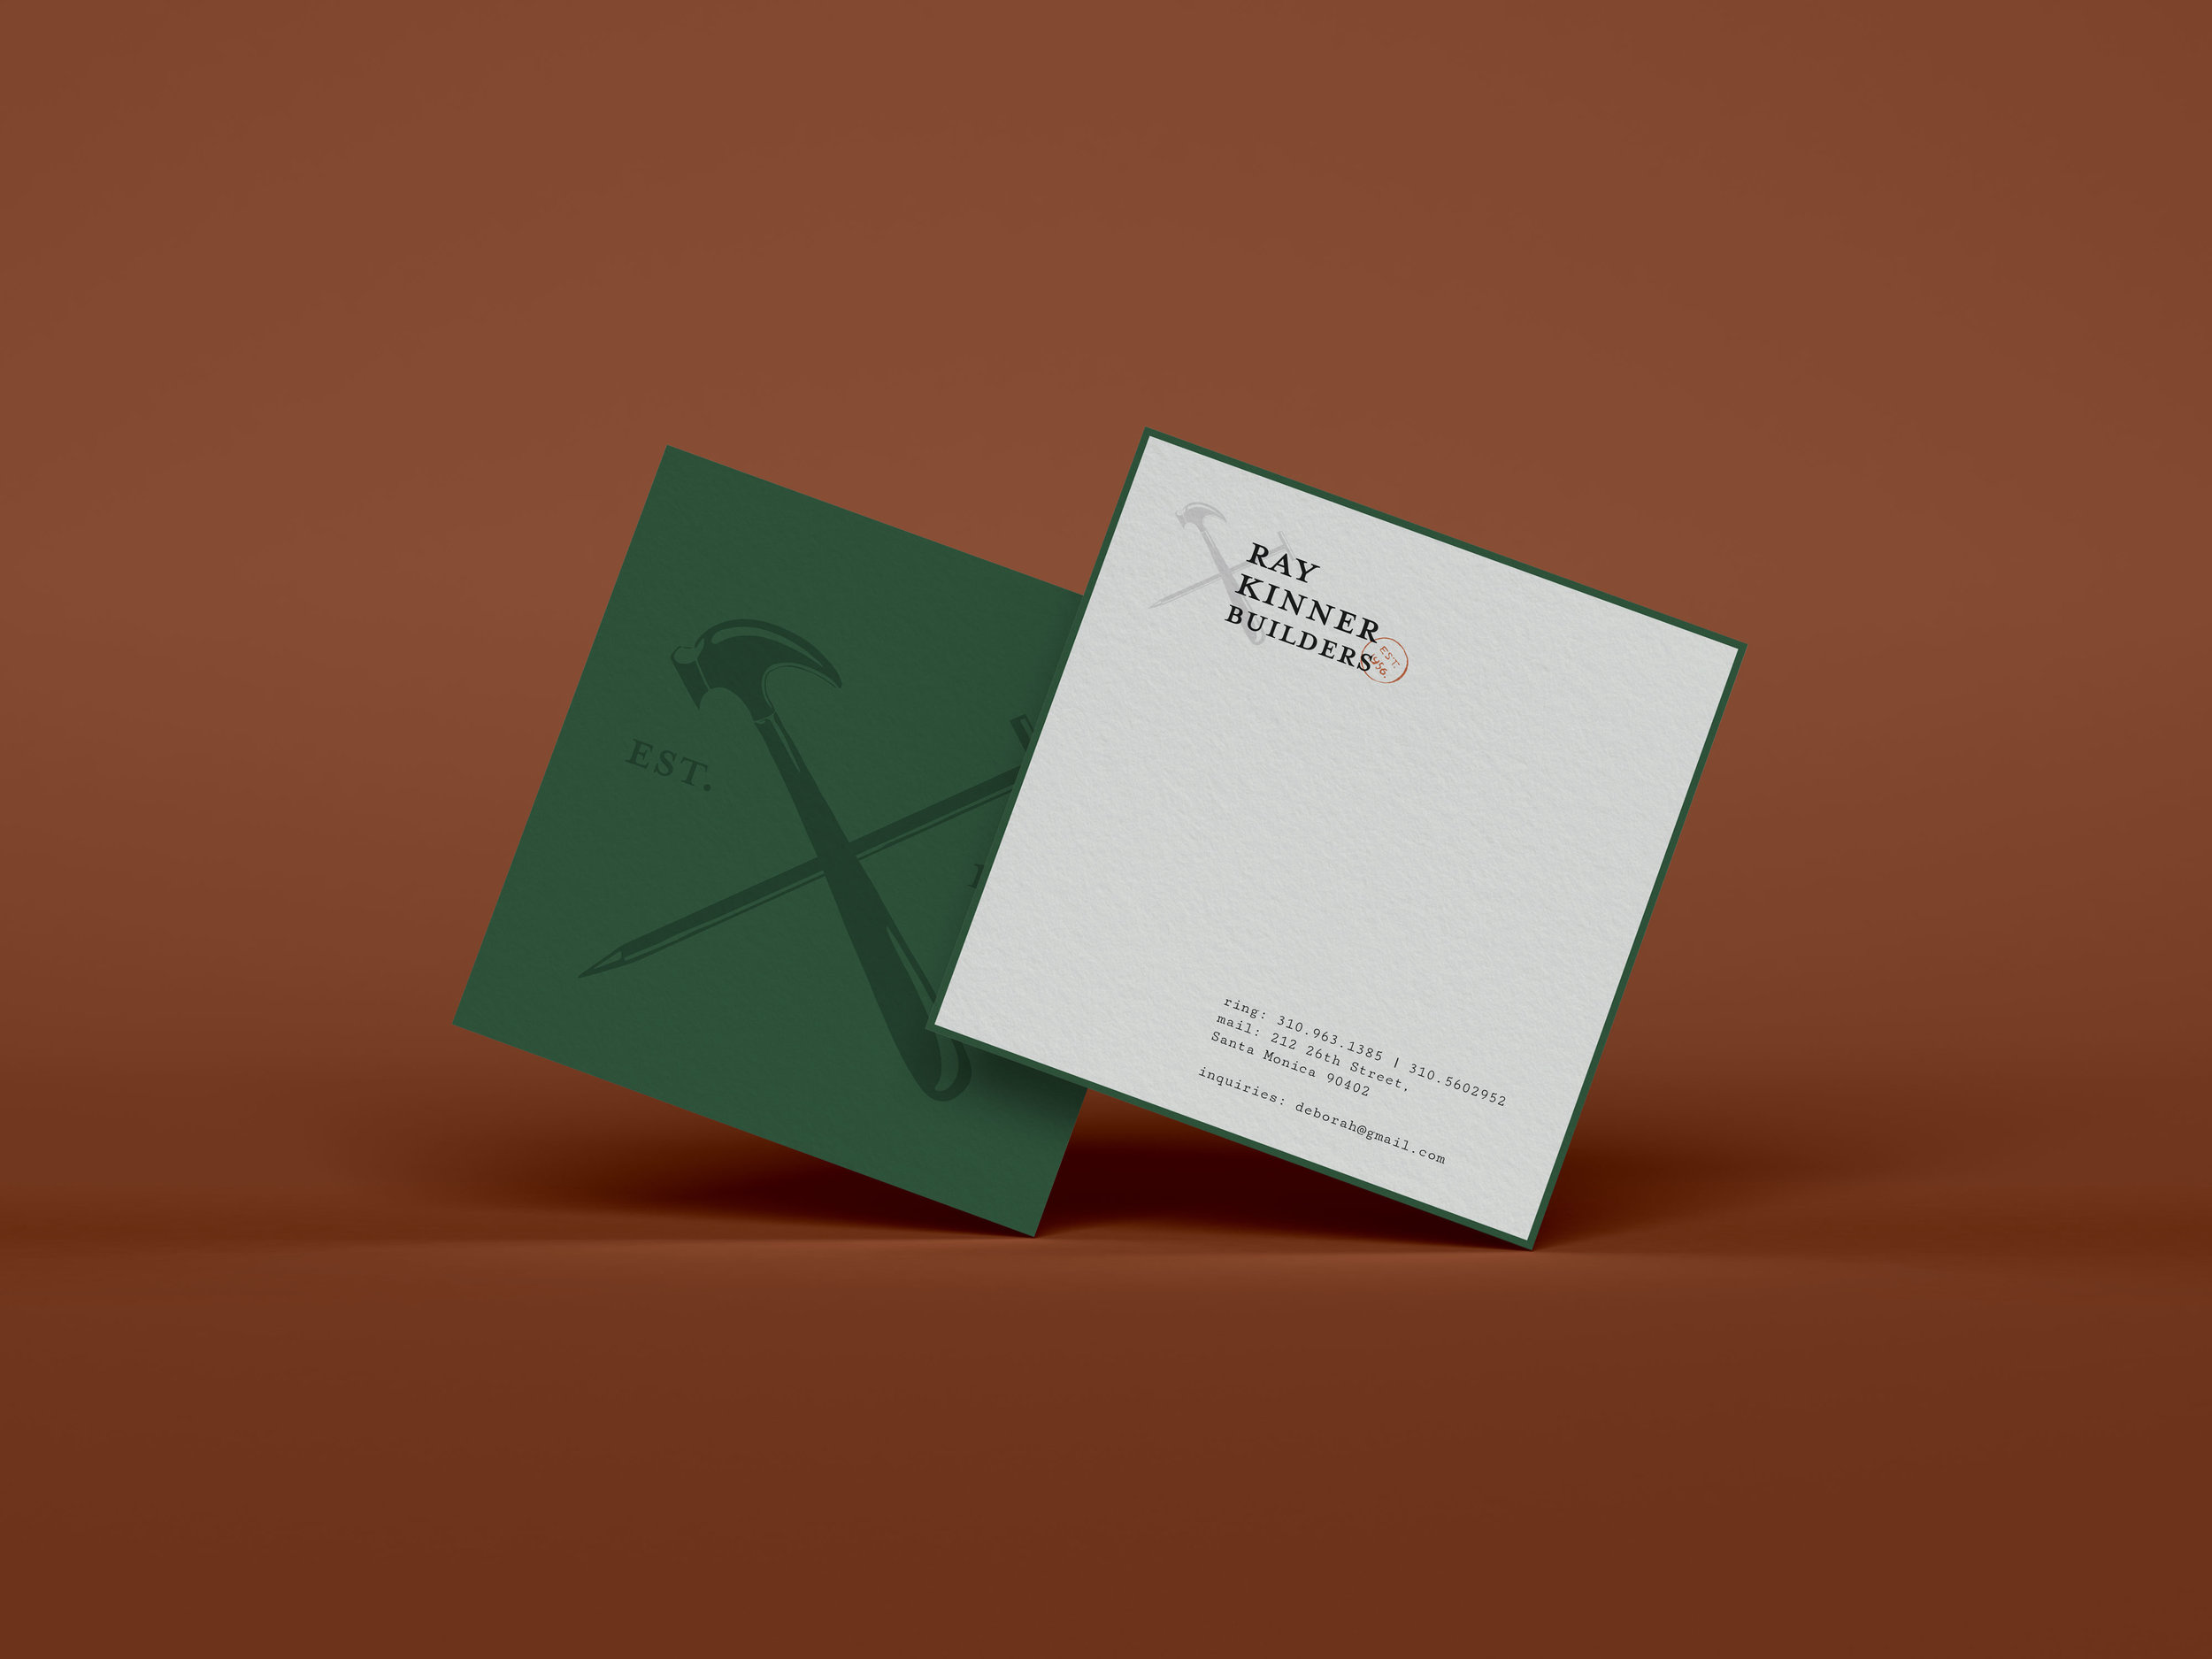 Free-Brand-Square-Business-Cards-Mockup-PSD.jpg